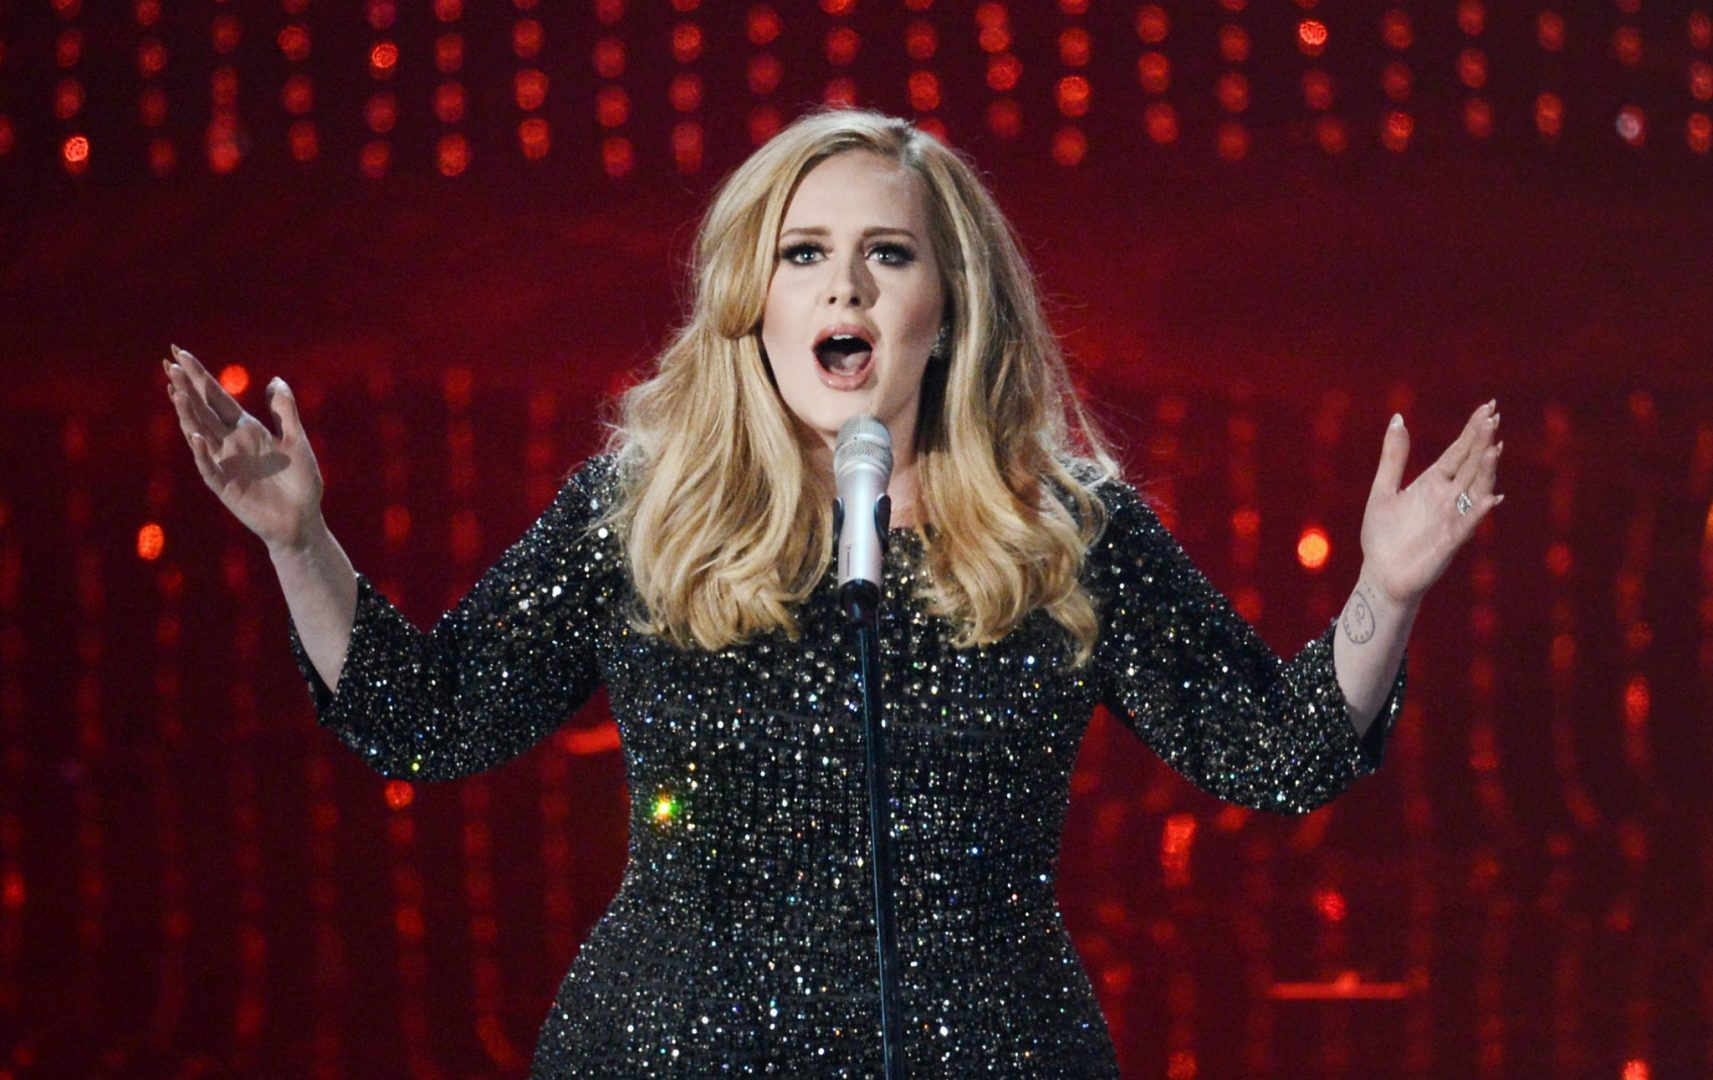 Glastonbury organisers say they are in the final stages of talks with Adele about a festival headline spot